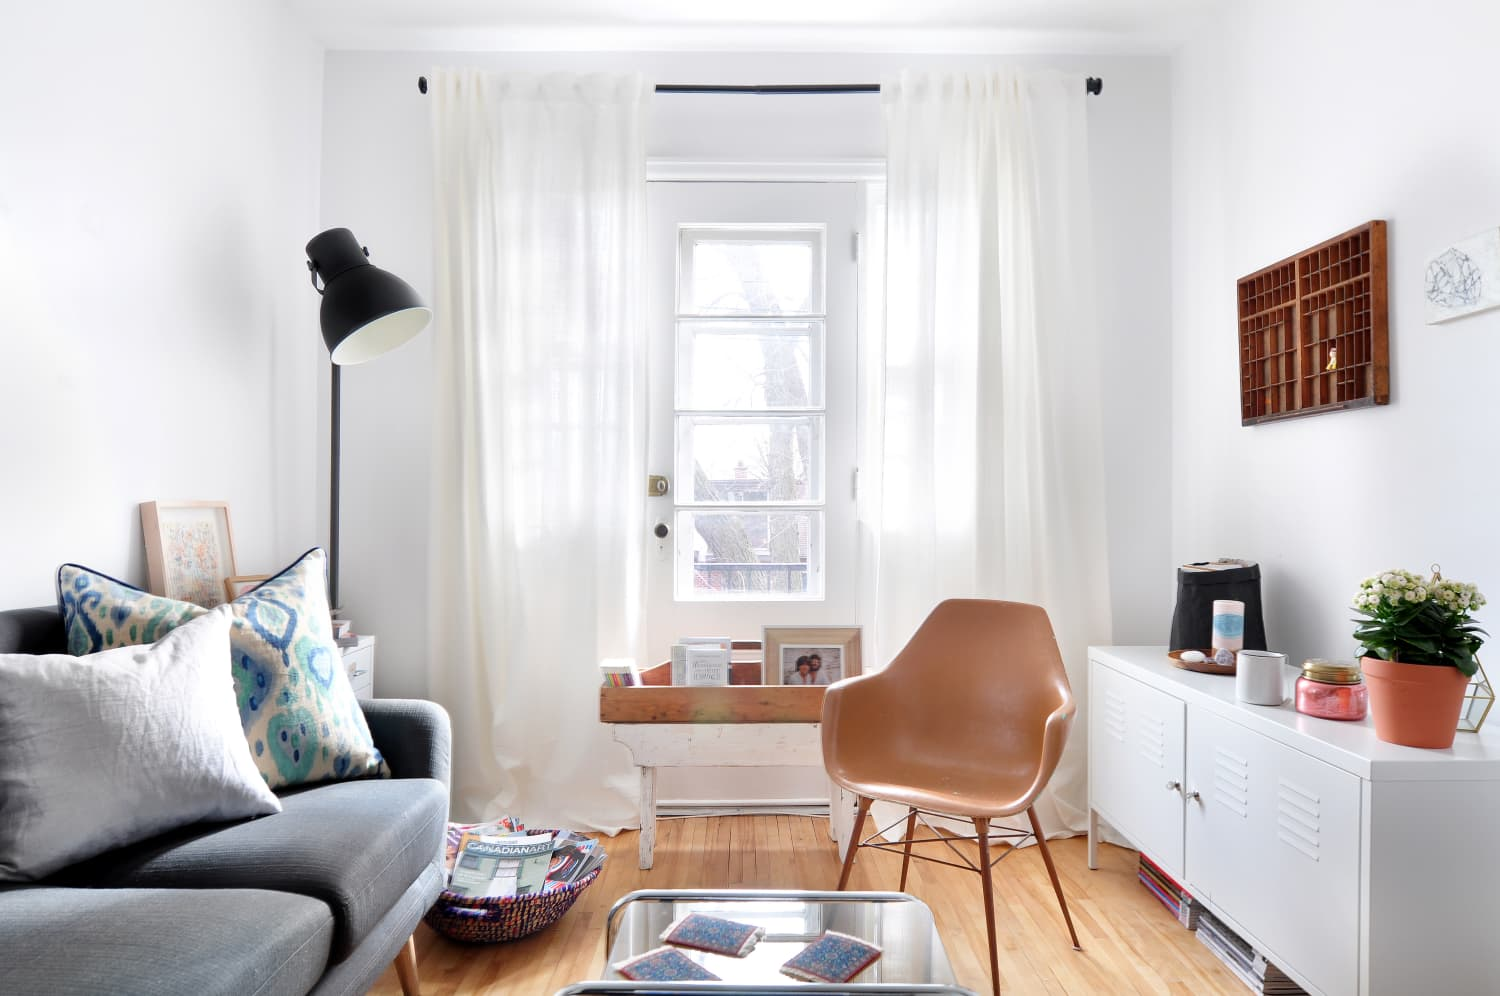 Design Tricks to Add Some Breathing Room to Your Space